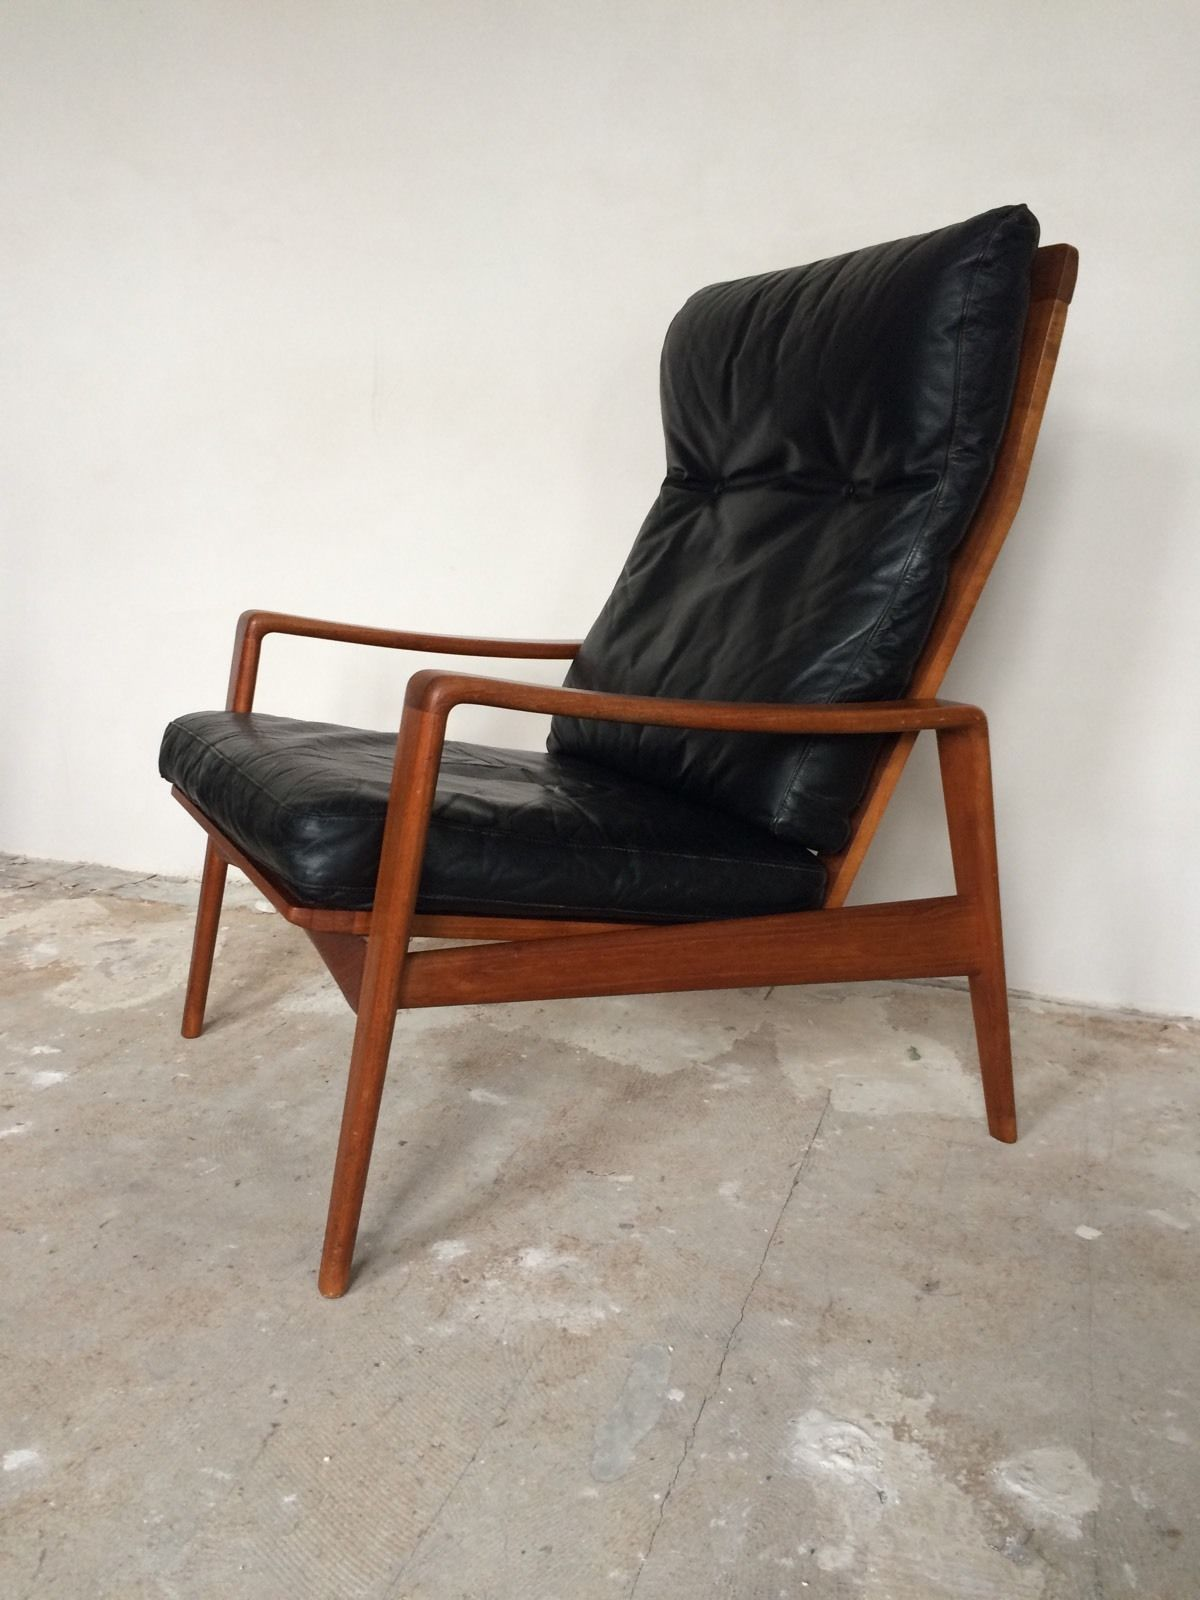 Teure Sessel Arne Wahl Iversen Komfort Lounge Chair Teak 60s Danish Design